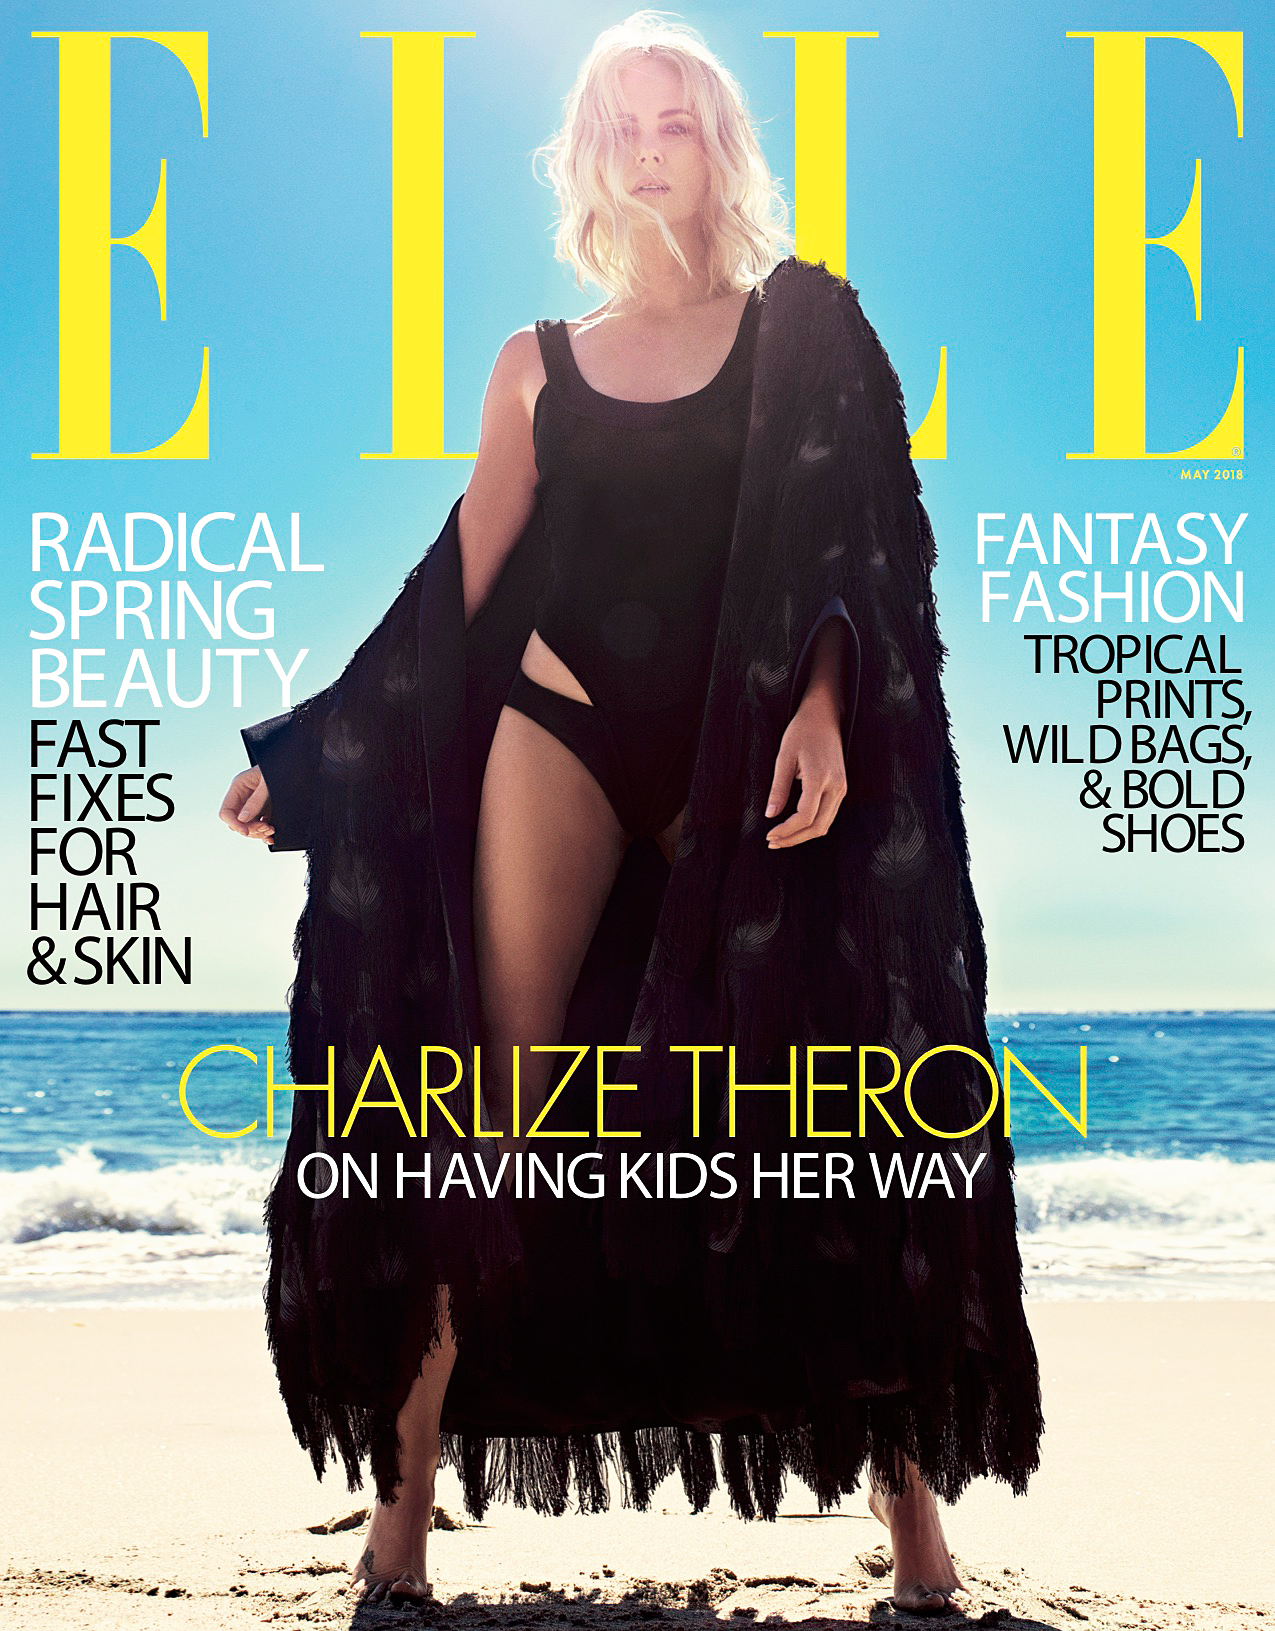 Charlize Theron Considers Leaving America: 'Racism Is Much More Alive and Well'